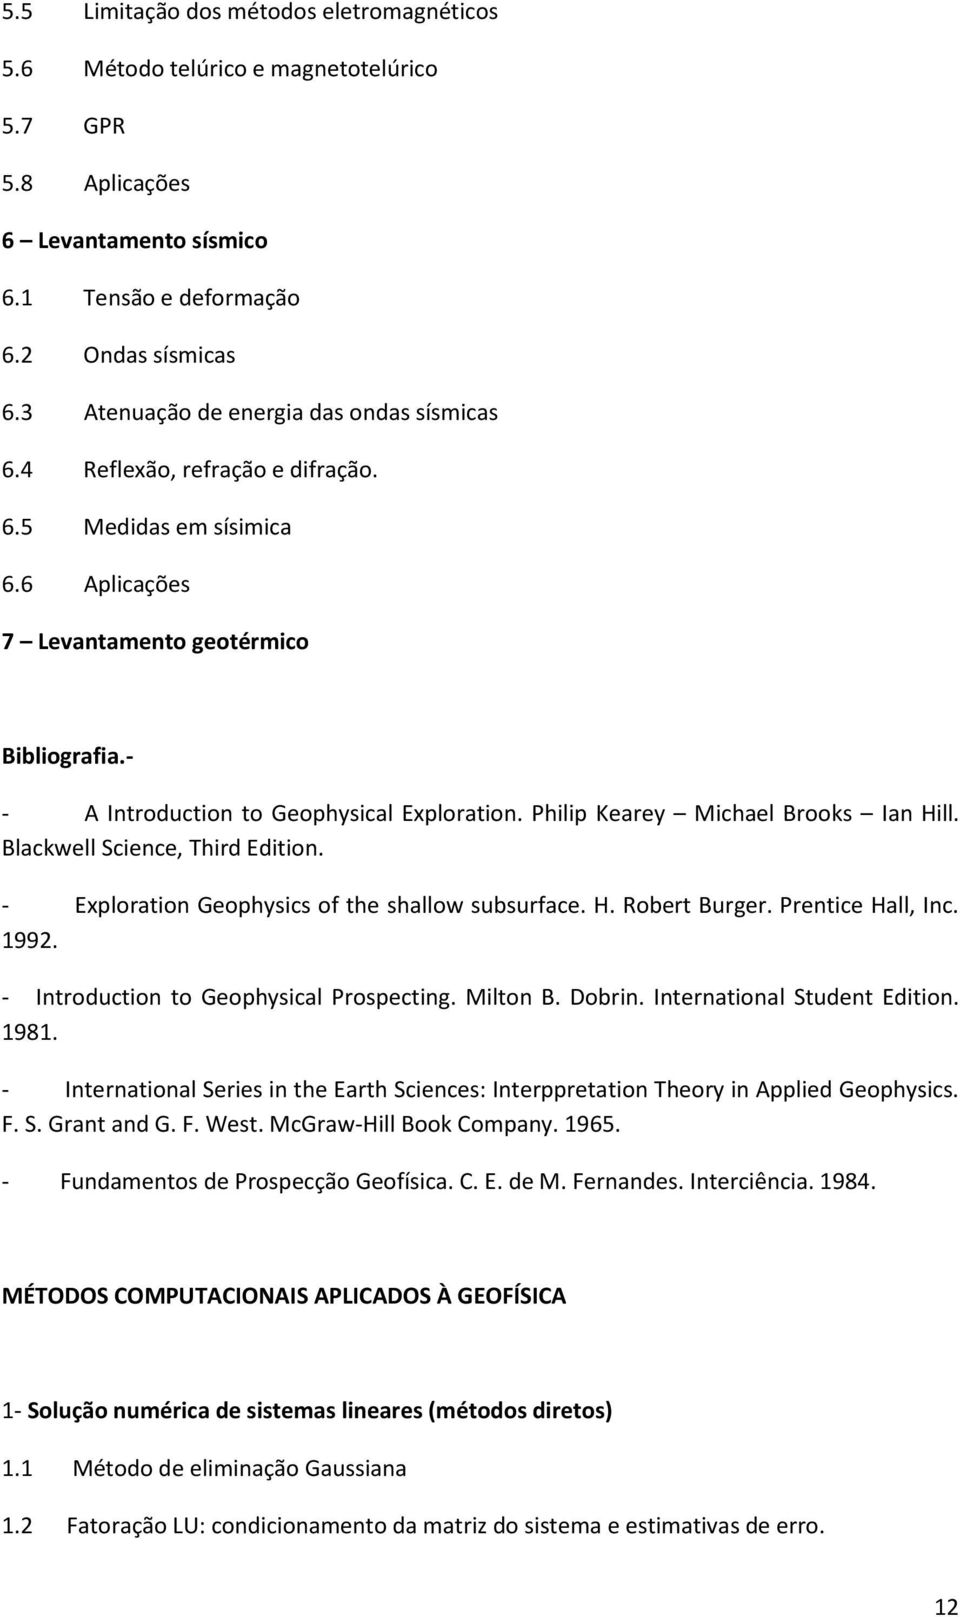 - - A Introduction to Geophysical Exploration. Philip Kearey Michael Brooks Ian Hill. Blackwell Science, Third Edition. - Exploration Geophysics of the shallow subsurface. H. Robert Burger.